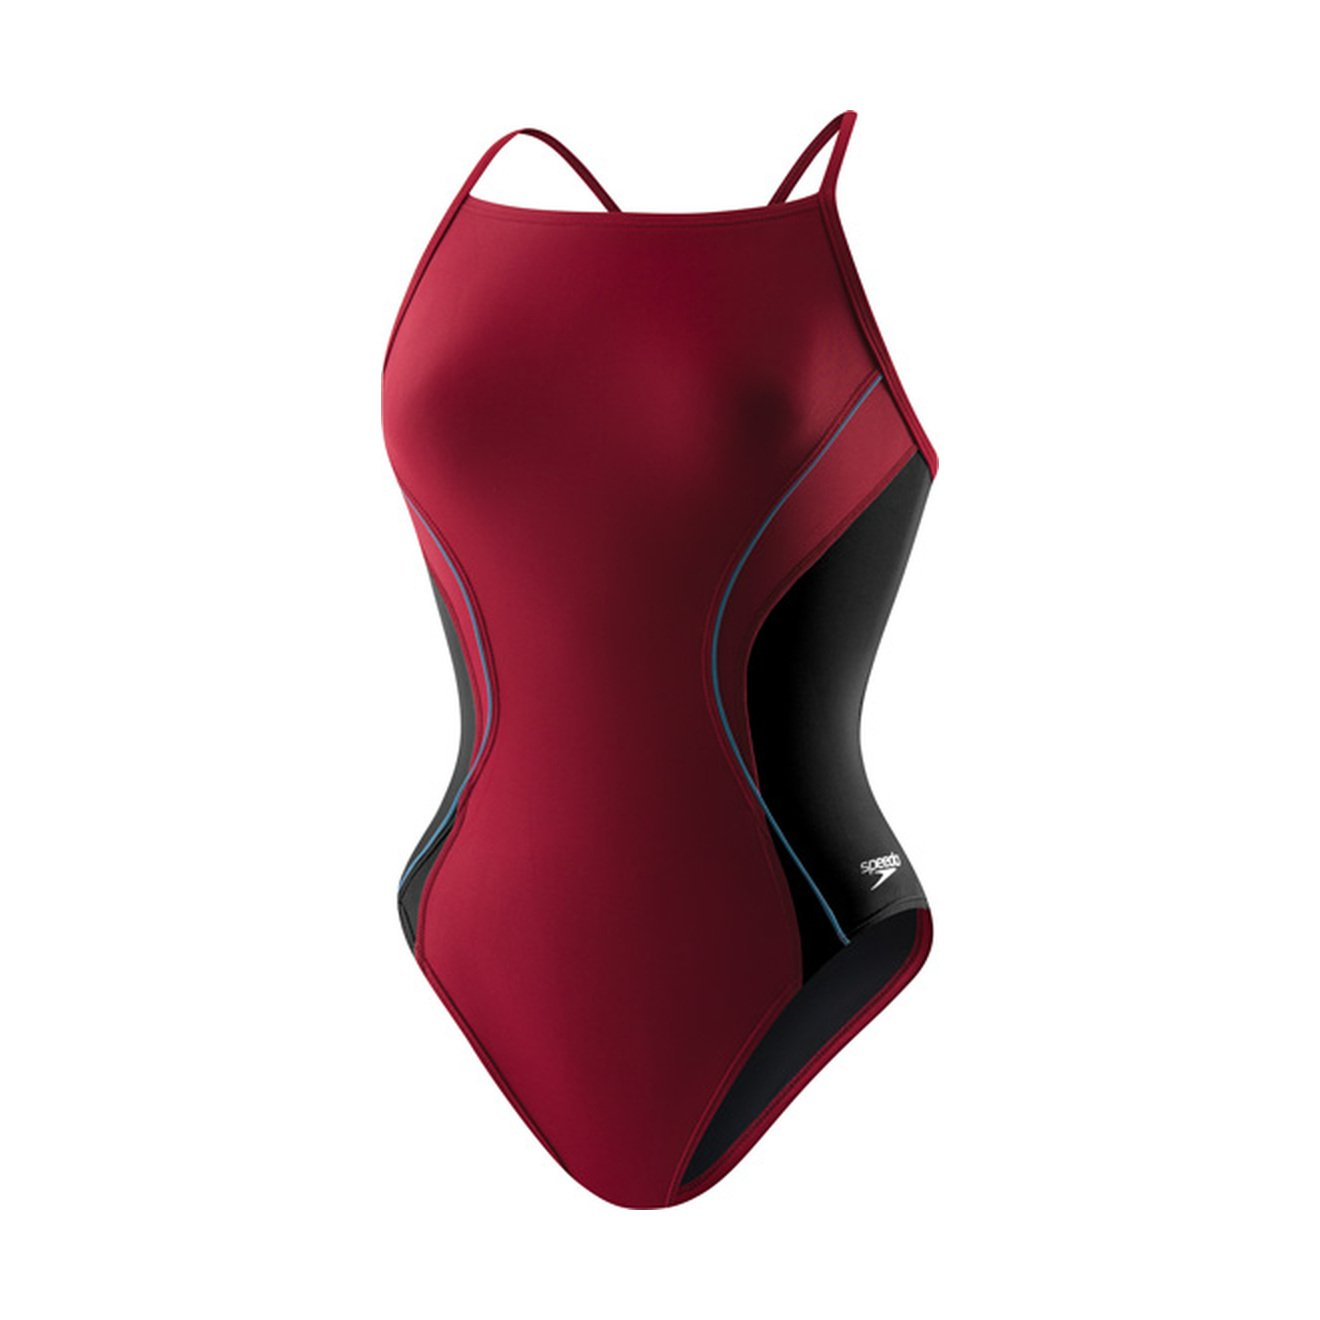 Speedo Maroon Speedo Women's Power Flex Eco Revolve Splice Energy Back One Piece Swimsuit